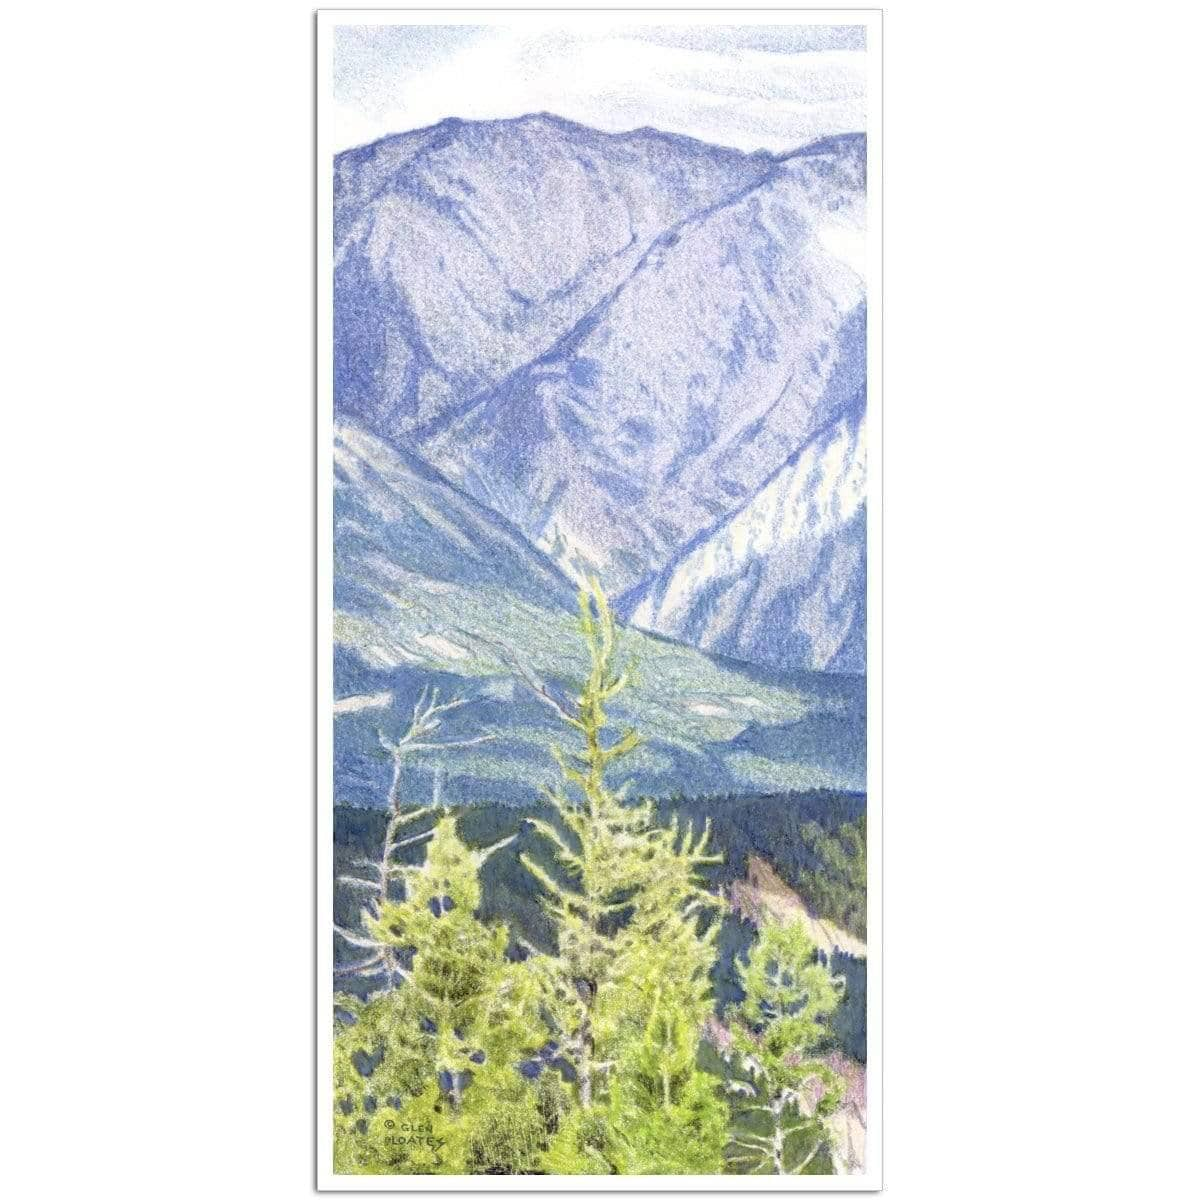 Fairholme Range Banff - Art Print - The Official Glen Loates Store